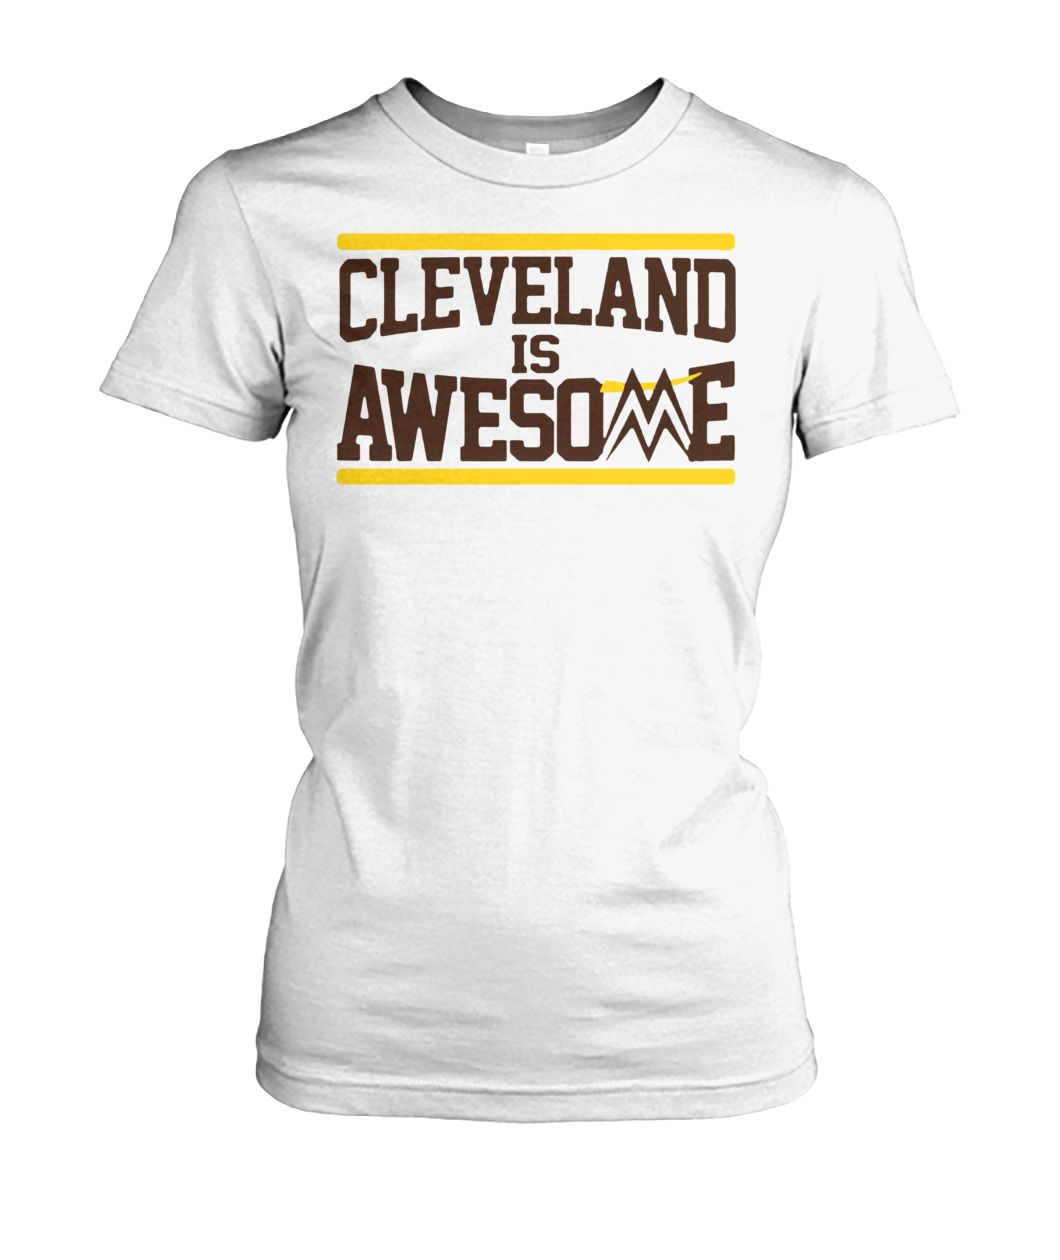 Cleveland is awesome miz women's crew tee